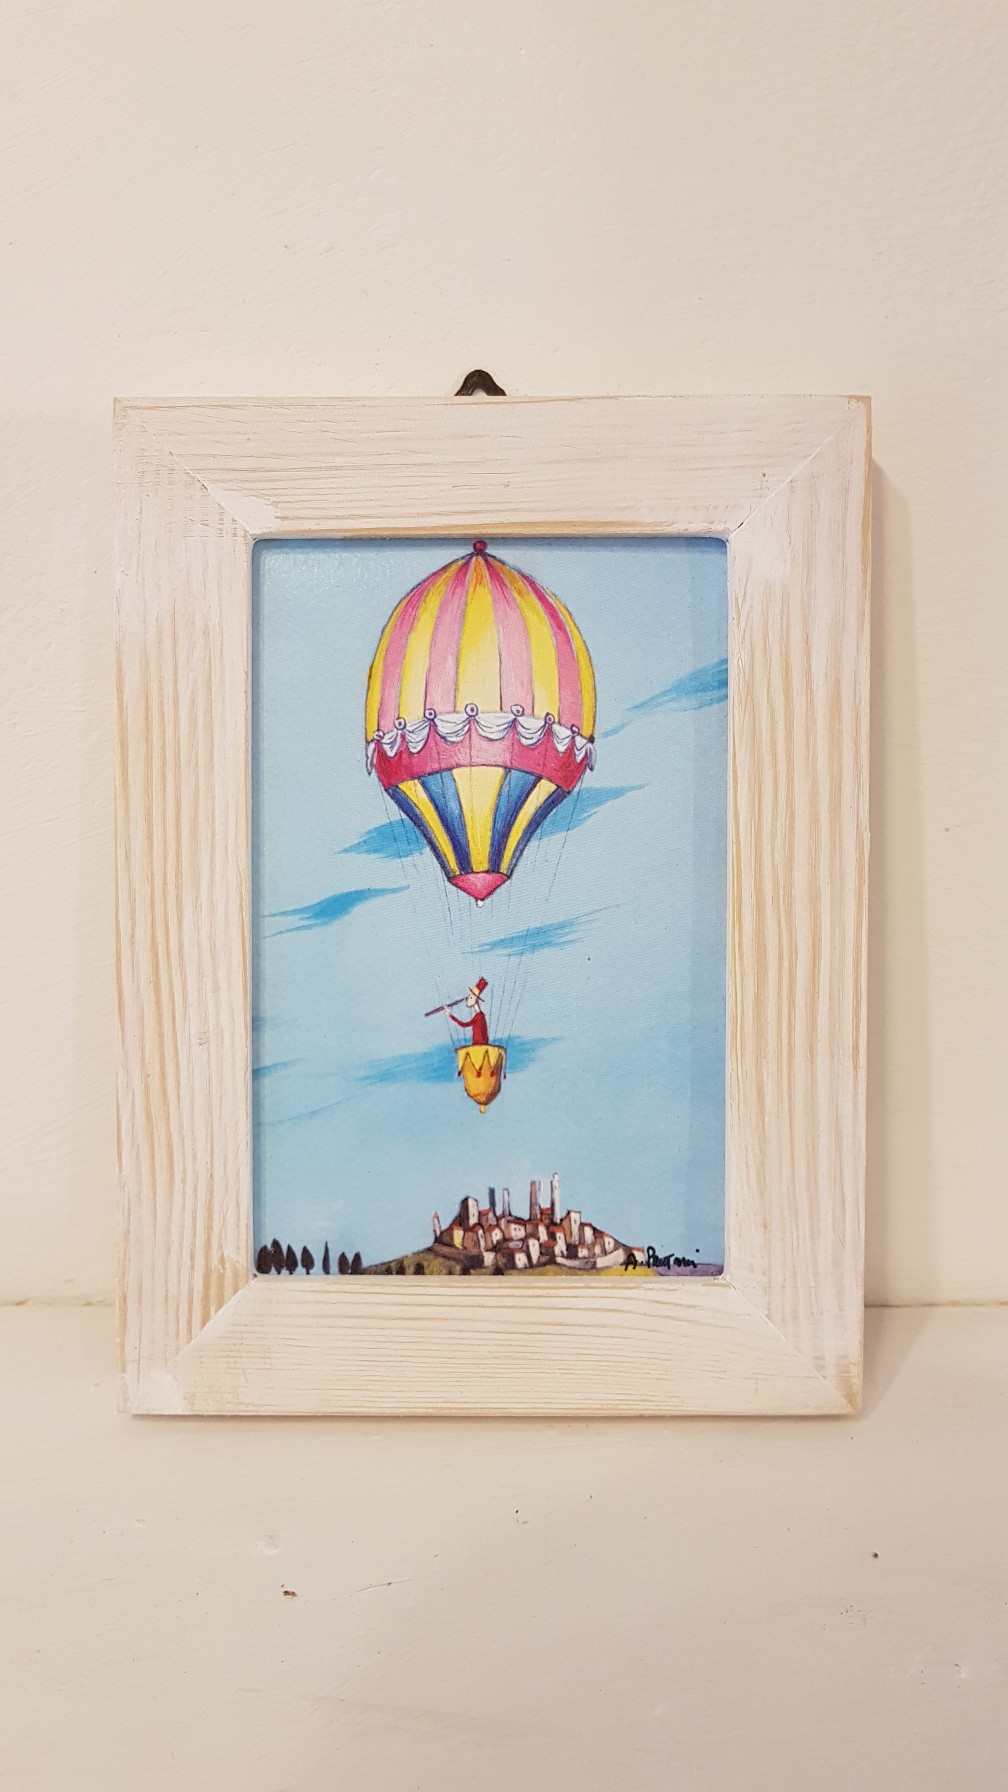 Il viaggio di Igino in mongolfiera con cornice, the journey of Igino in the balloon with frame